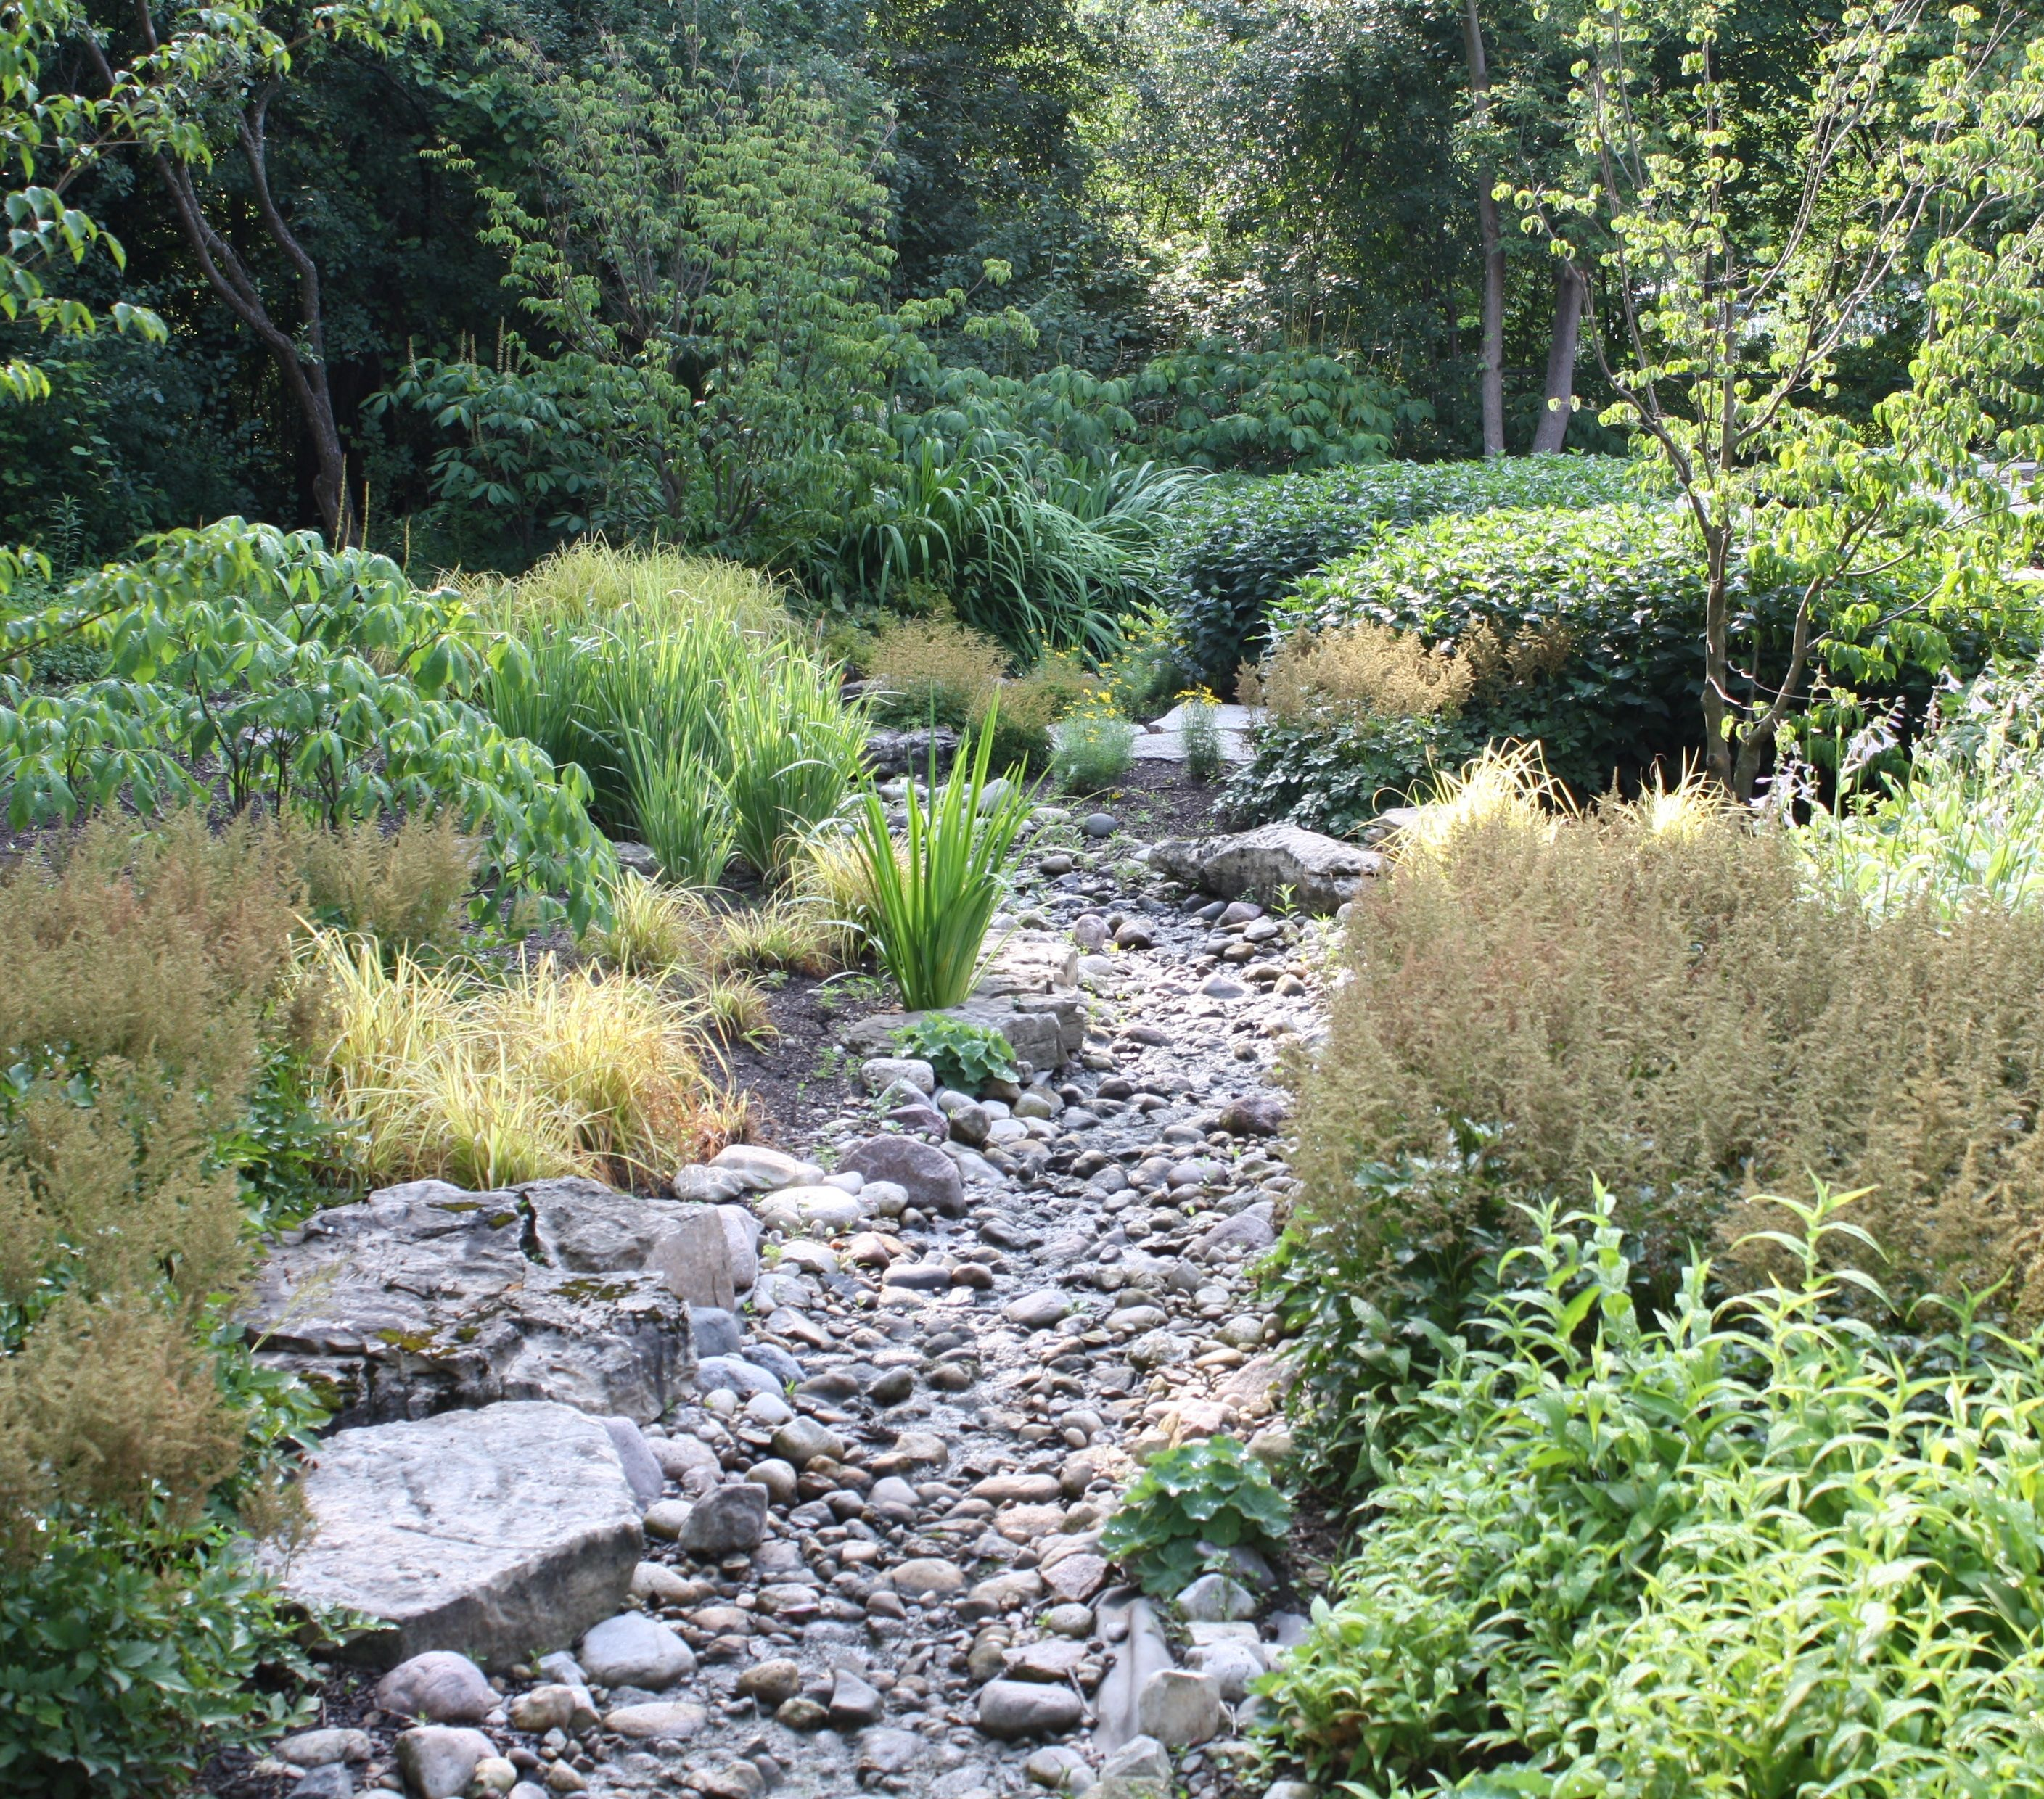 dry creek beds turn to running rivers during the rainy seasons